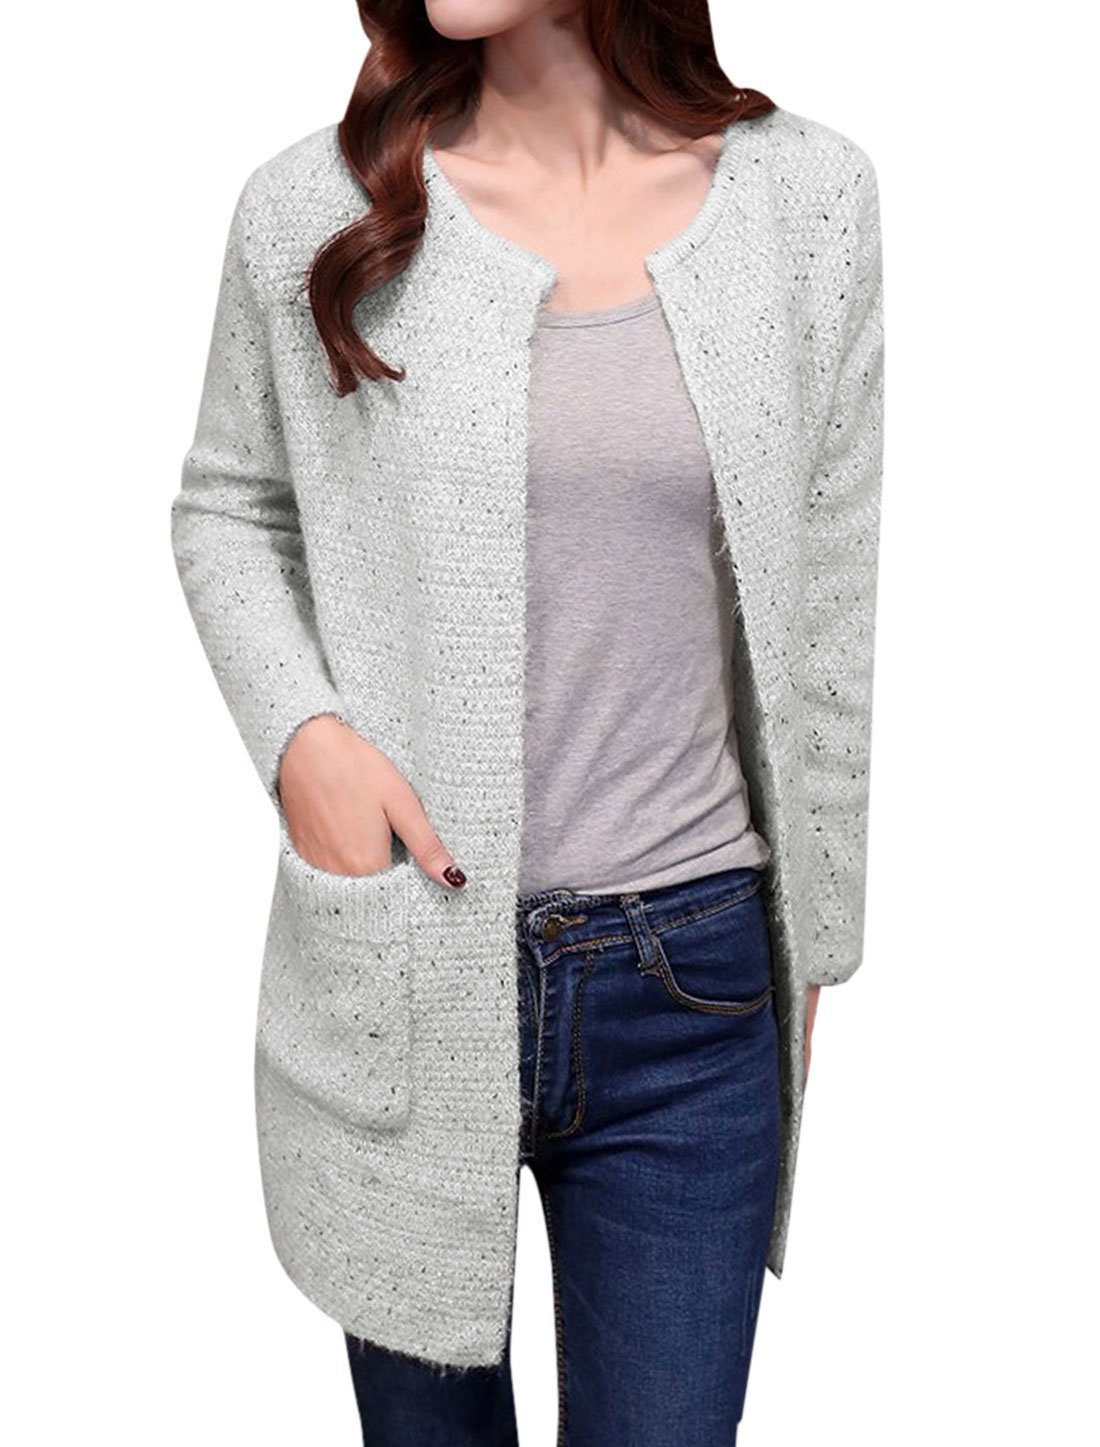 Women Long Sleeve Front Opening Sweater Cardigan Off White S